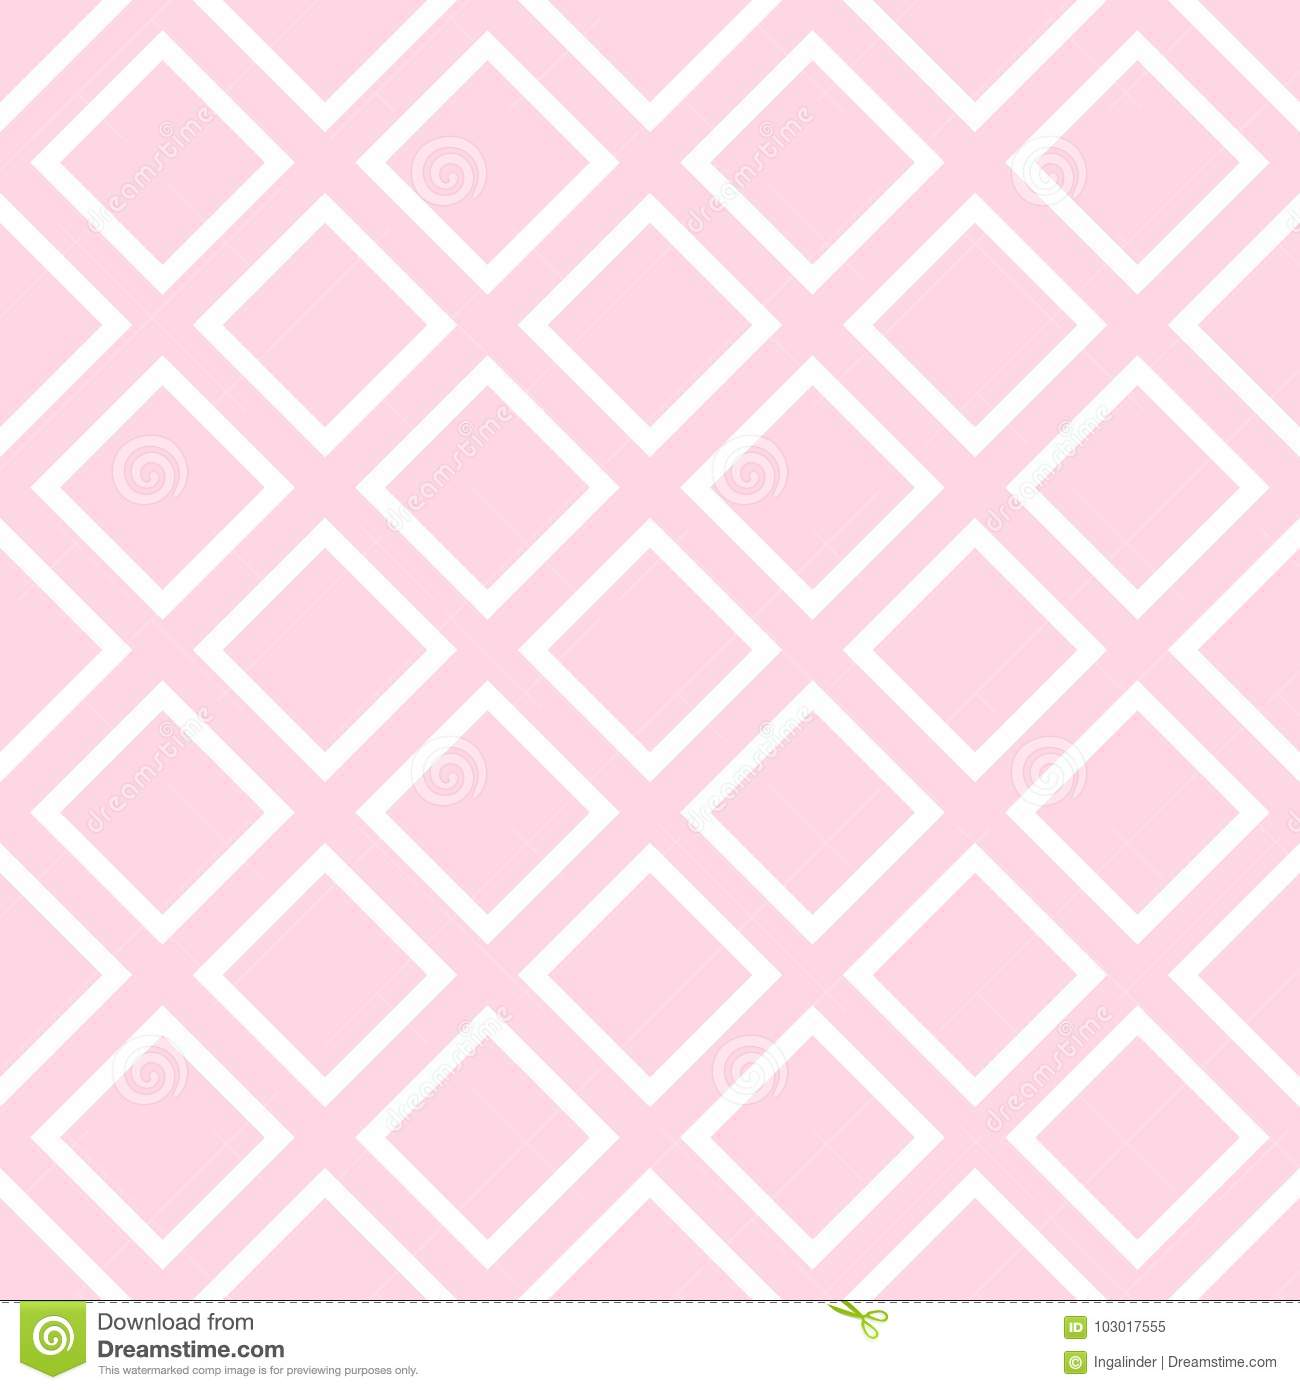 Tile vector pattern with pastel pink and white background for seamless decoration wallpaper